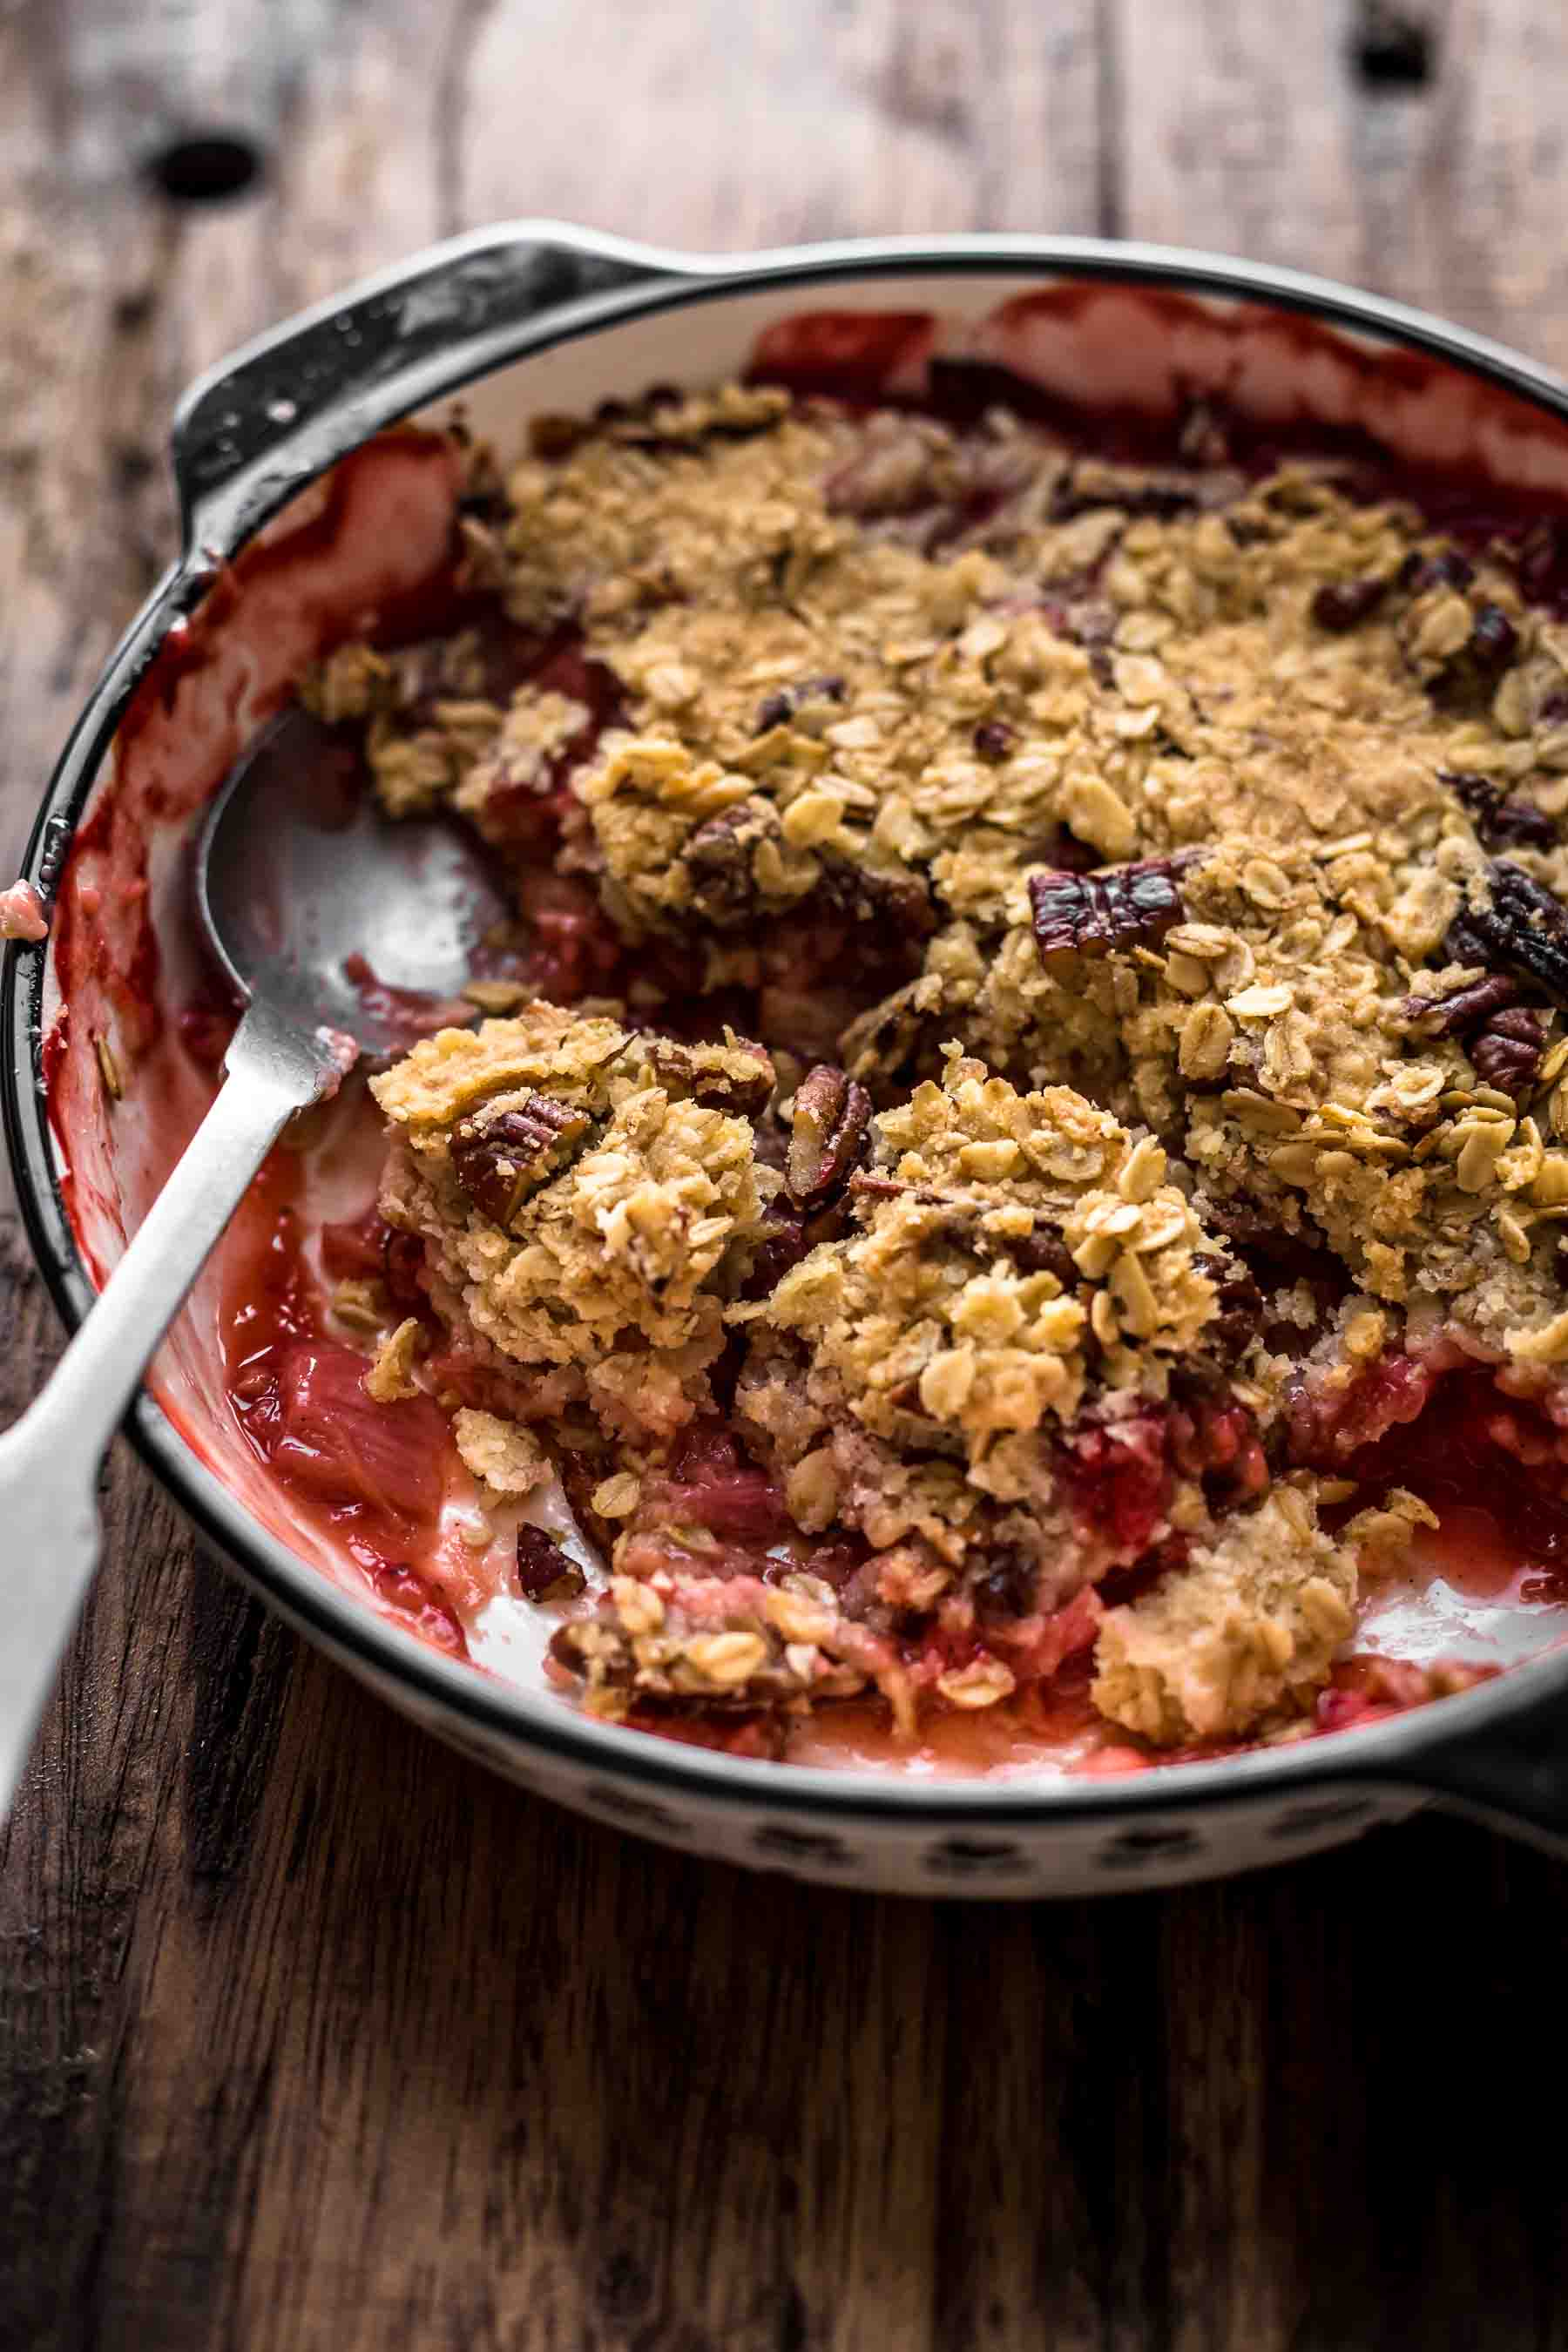 Baked Strawberry Rhubarb Crisp in baking dish